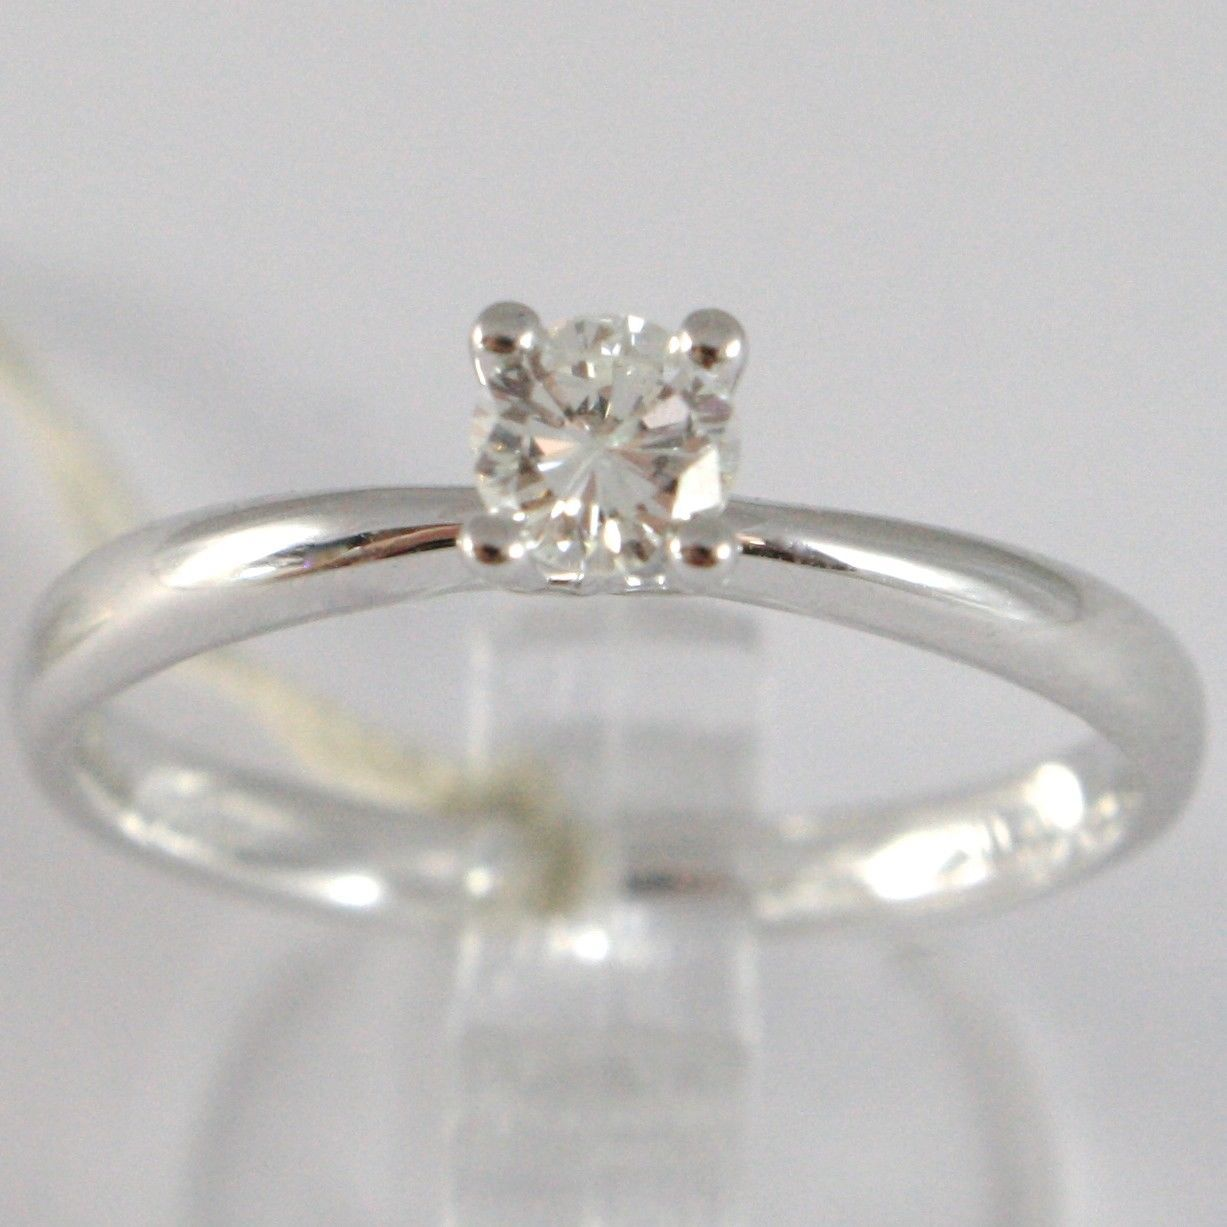 WHITE GOLD RING 750 18K, SOLITAIRE, STEM ROUNDED, DIAMOND CARAT 0.25